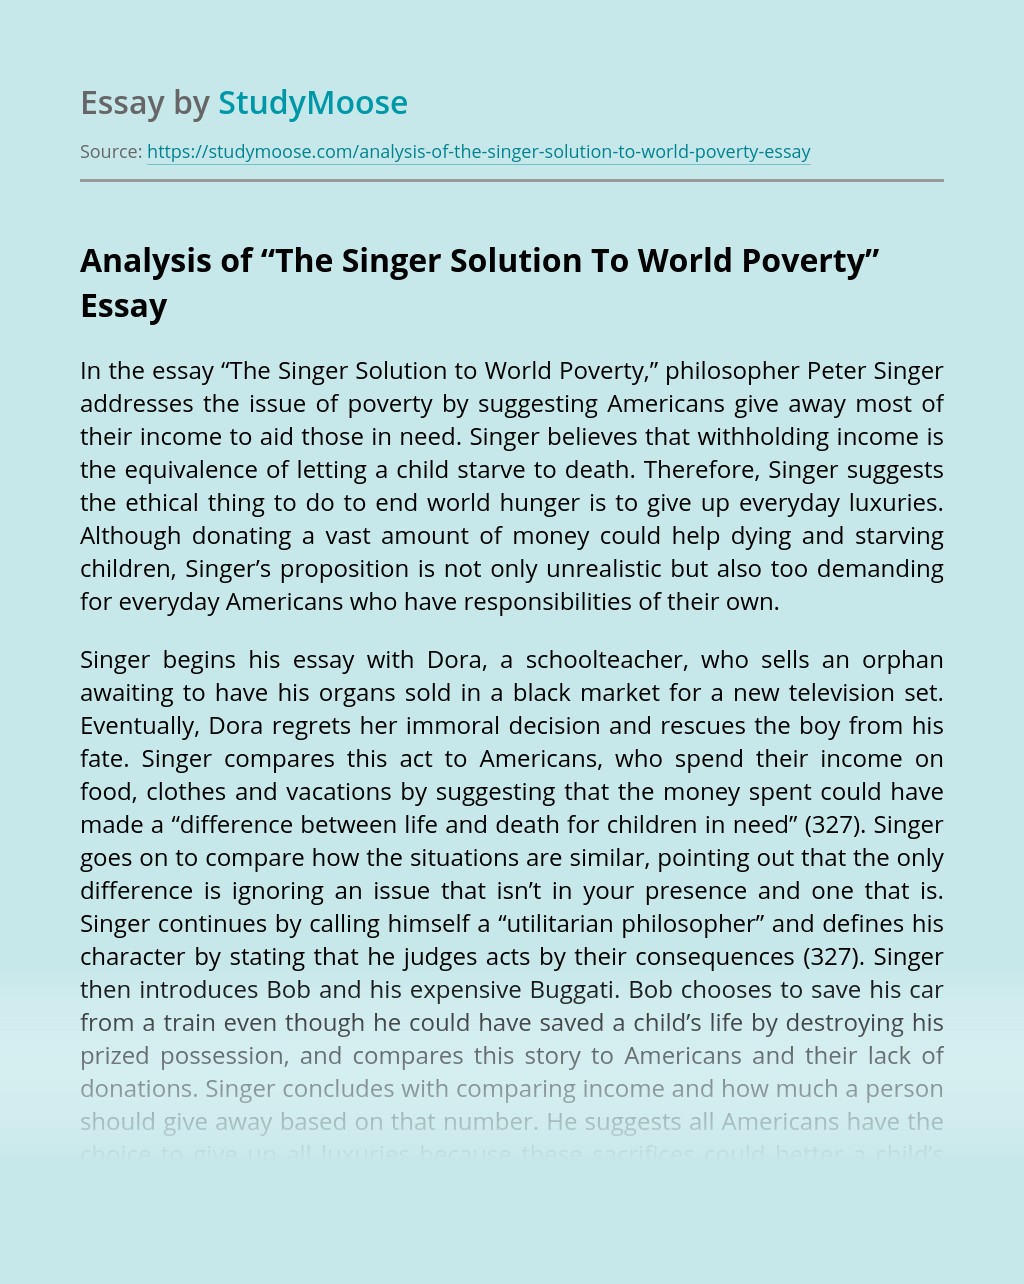 """Analysis of """"The Singer Solution To World Poverty"""""""